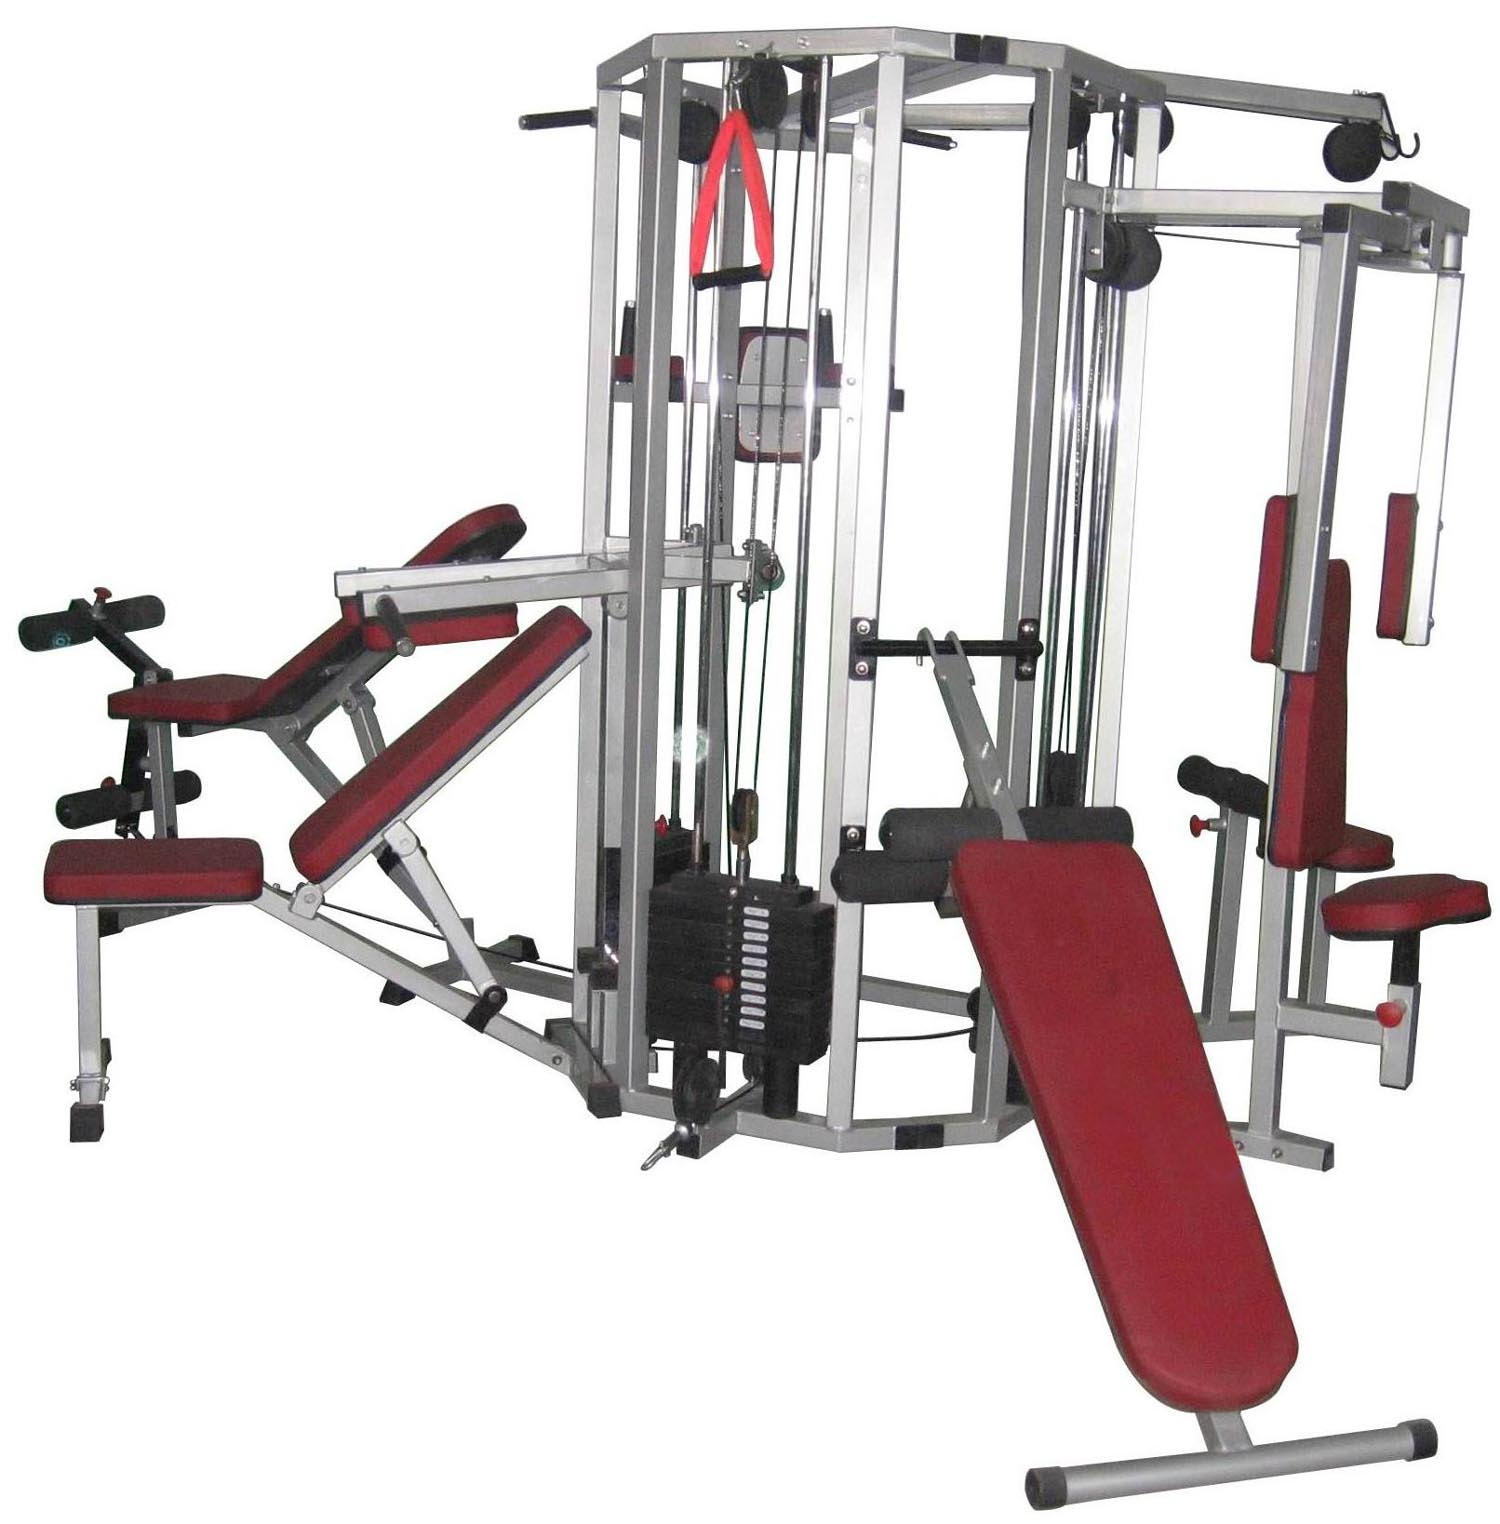 Fitness Equipment Home Gym: Benefits Of Buying Multi Station Home Gym Equipments